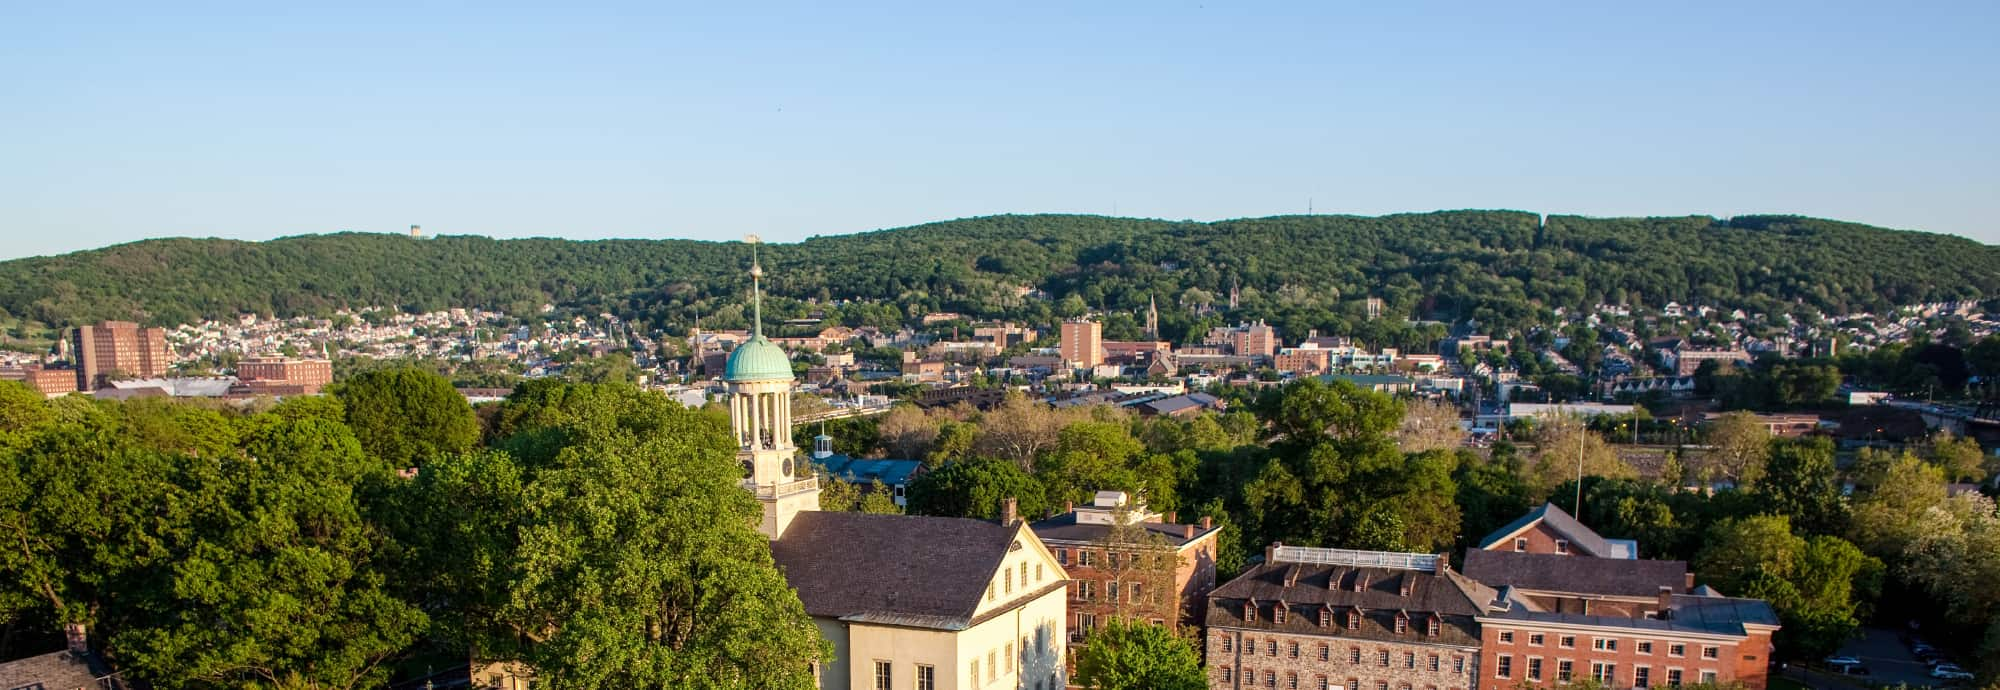 Bethlehem Pa And The Lehigh Valley Lehigh University